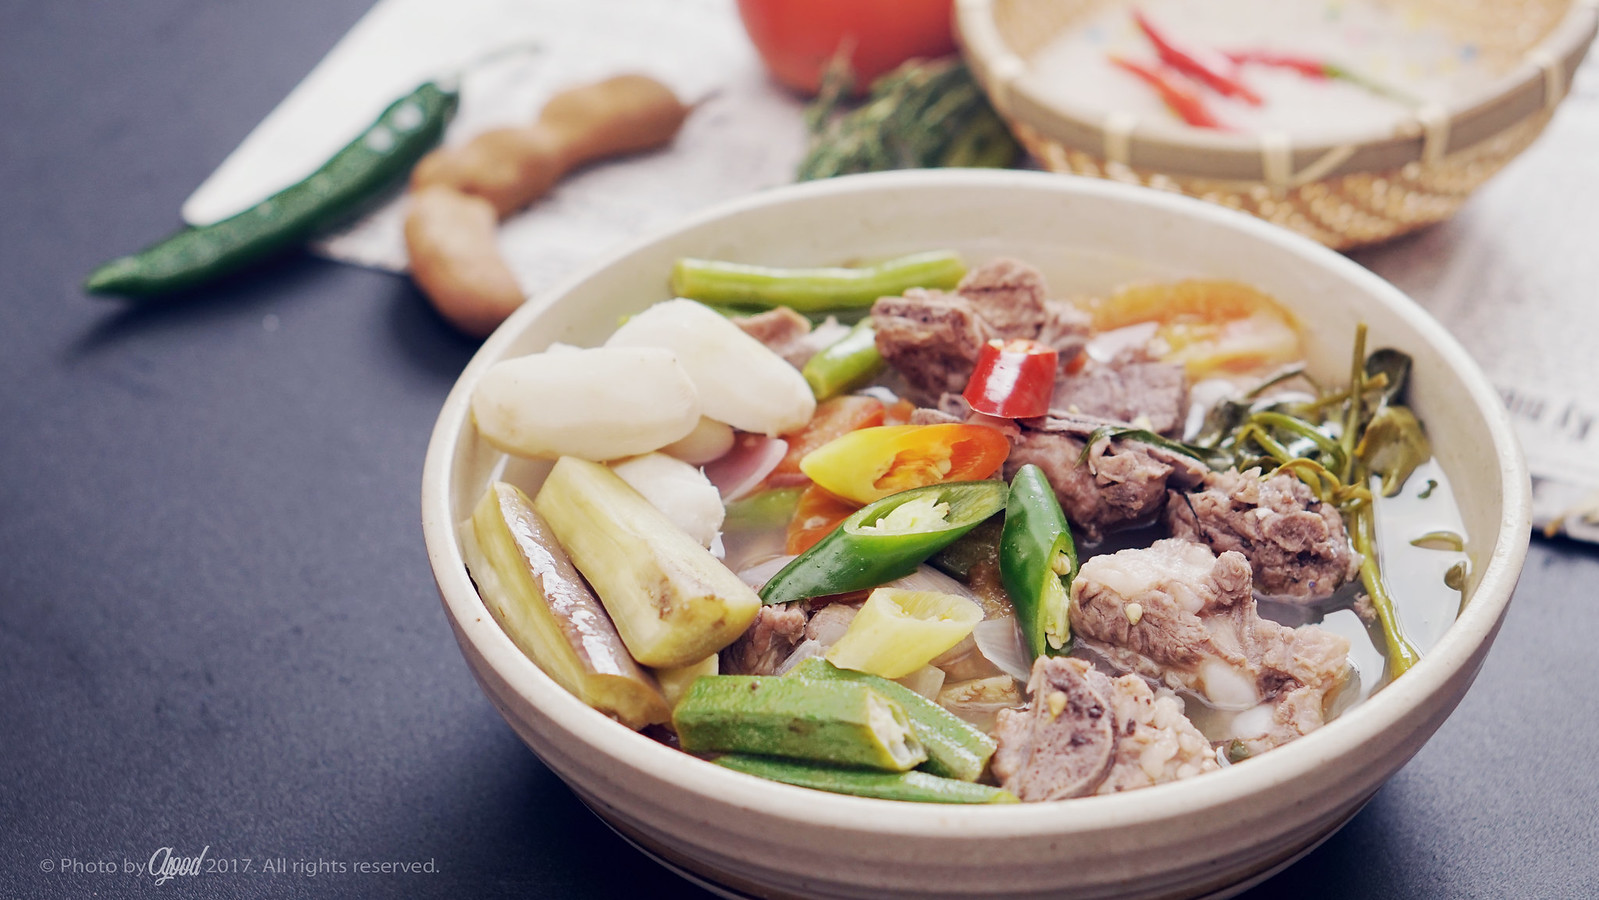 Pork Sinigang – Philippines hot and sour pork ribs soup